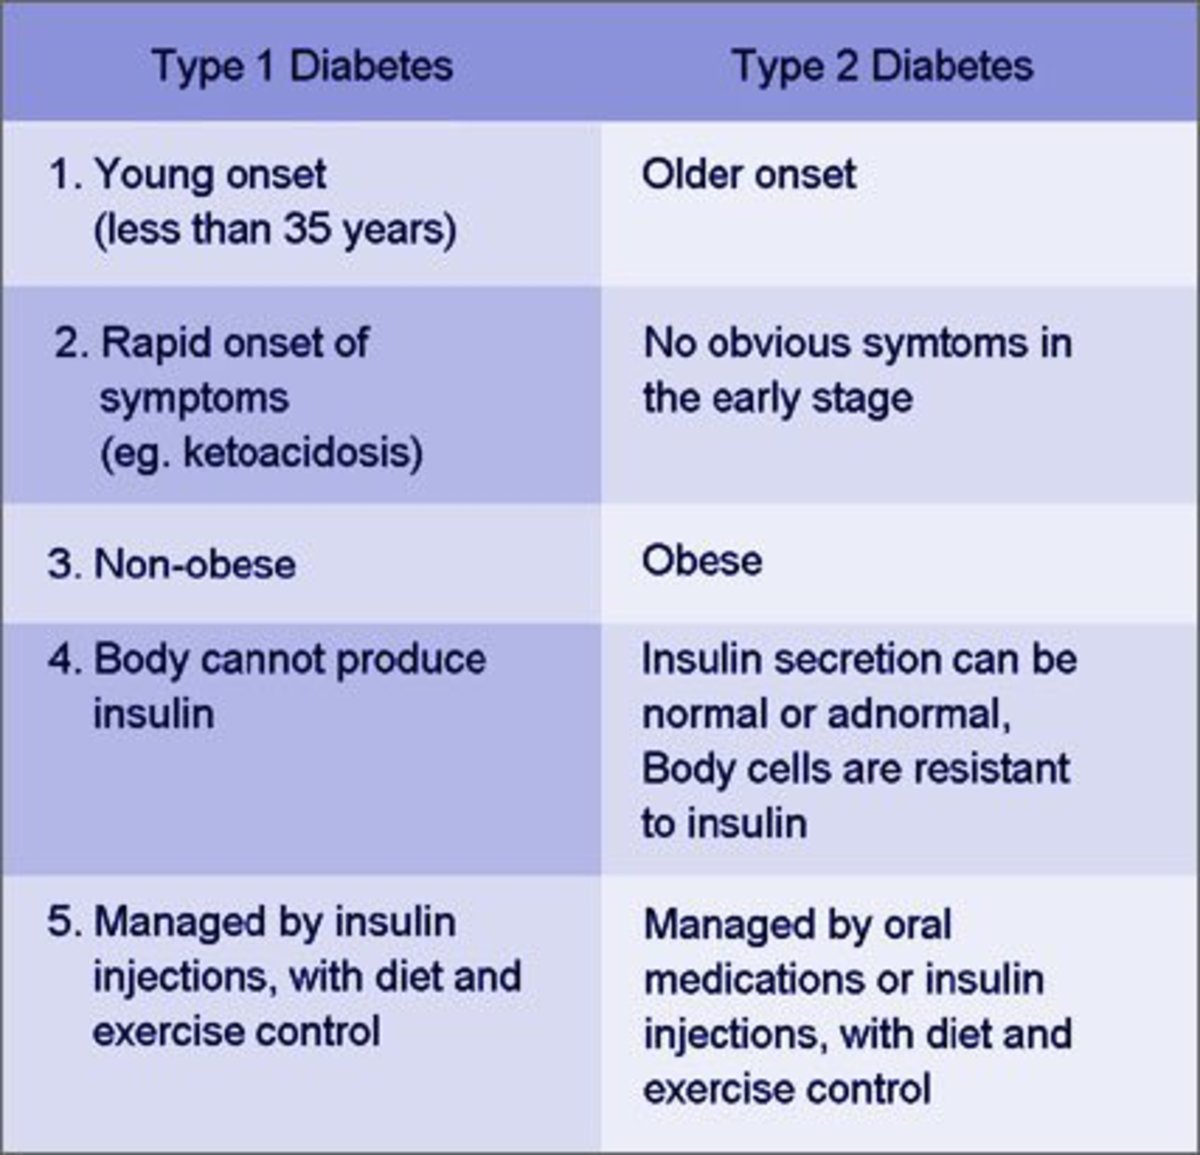 Comparison chart Type 1 vs Type 2 Diabetes